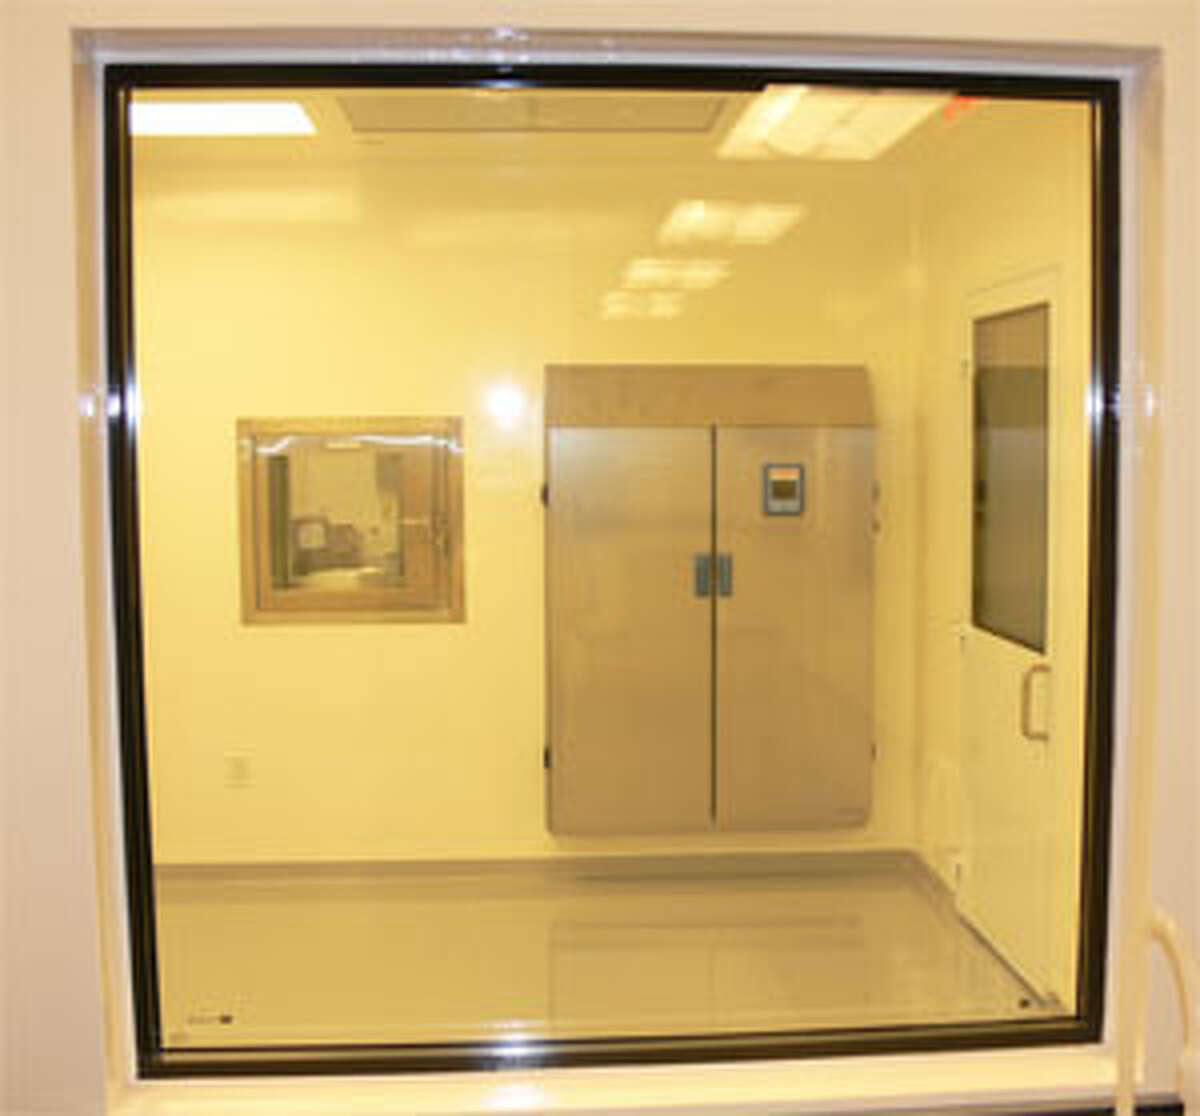 A look inside a restricted lab area in the NanoViricides Inc. facility in Shelton.